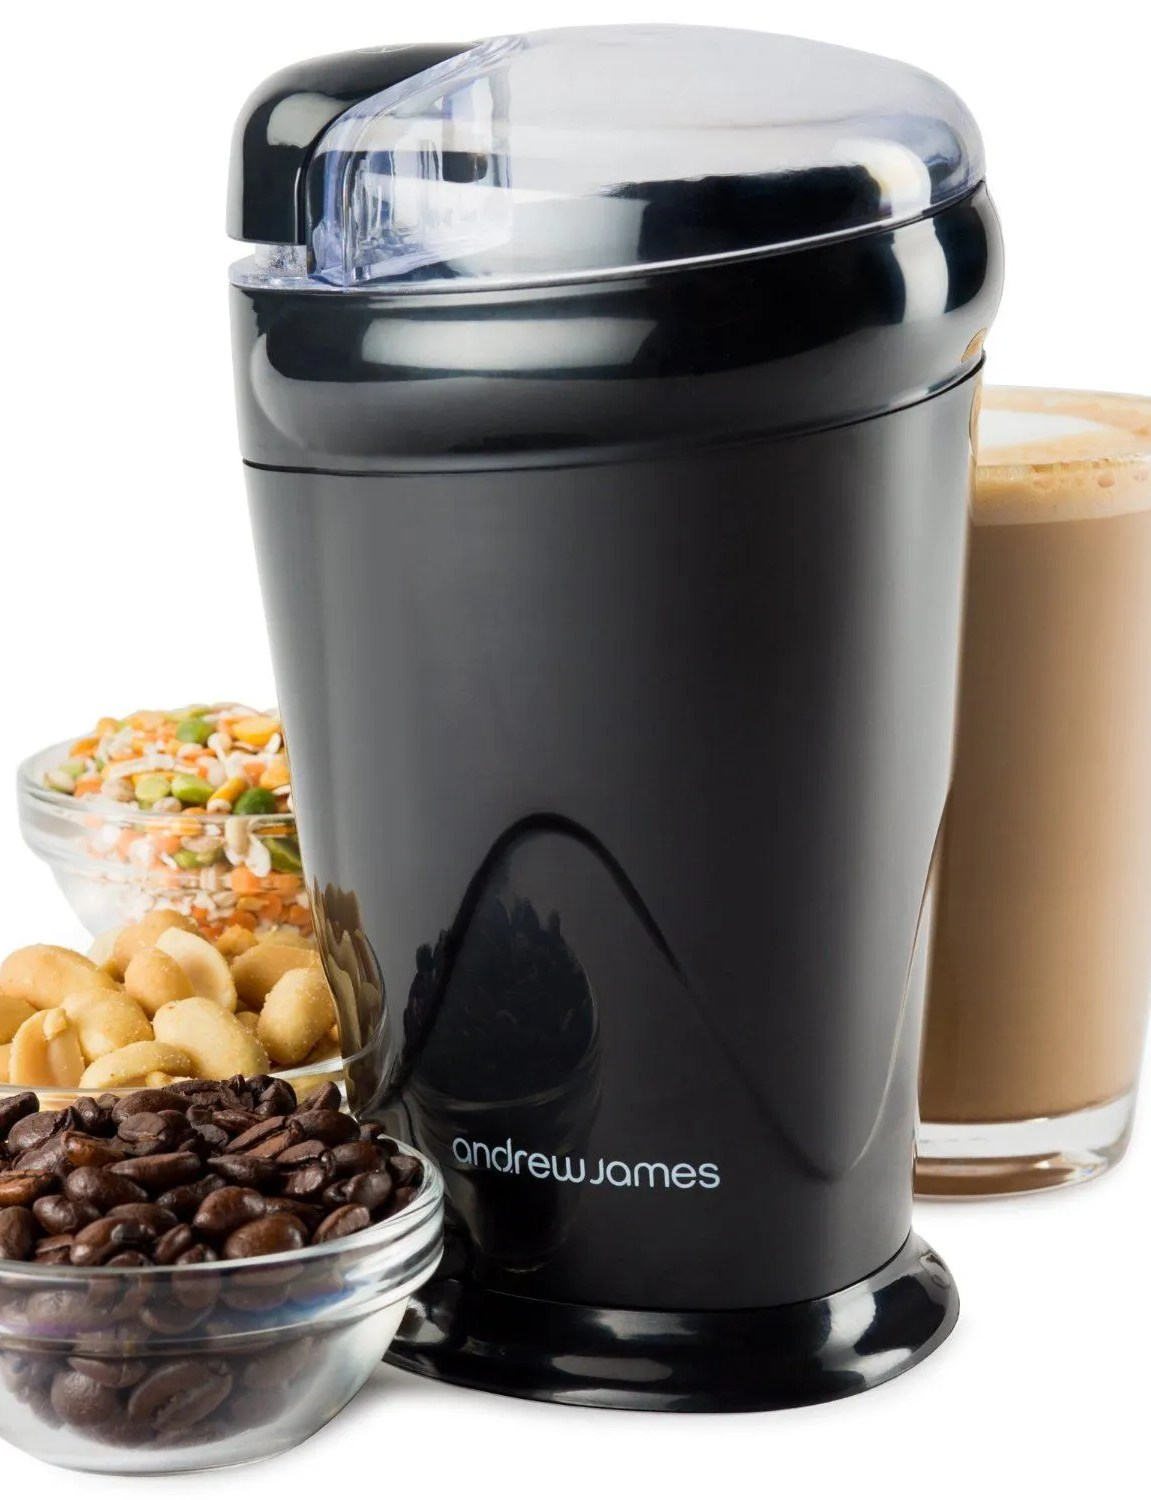 Andrew James Coffee, Nut and Spice Grinder